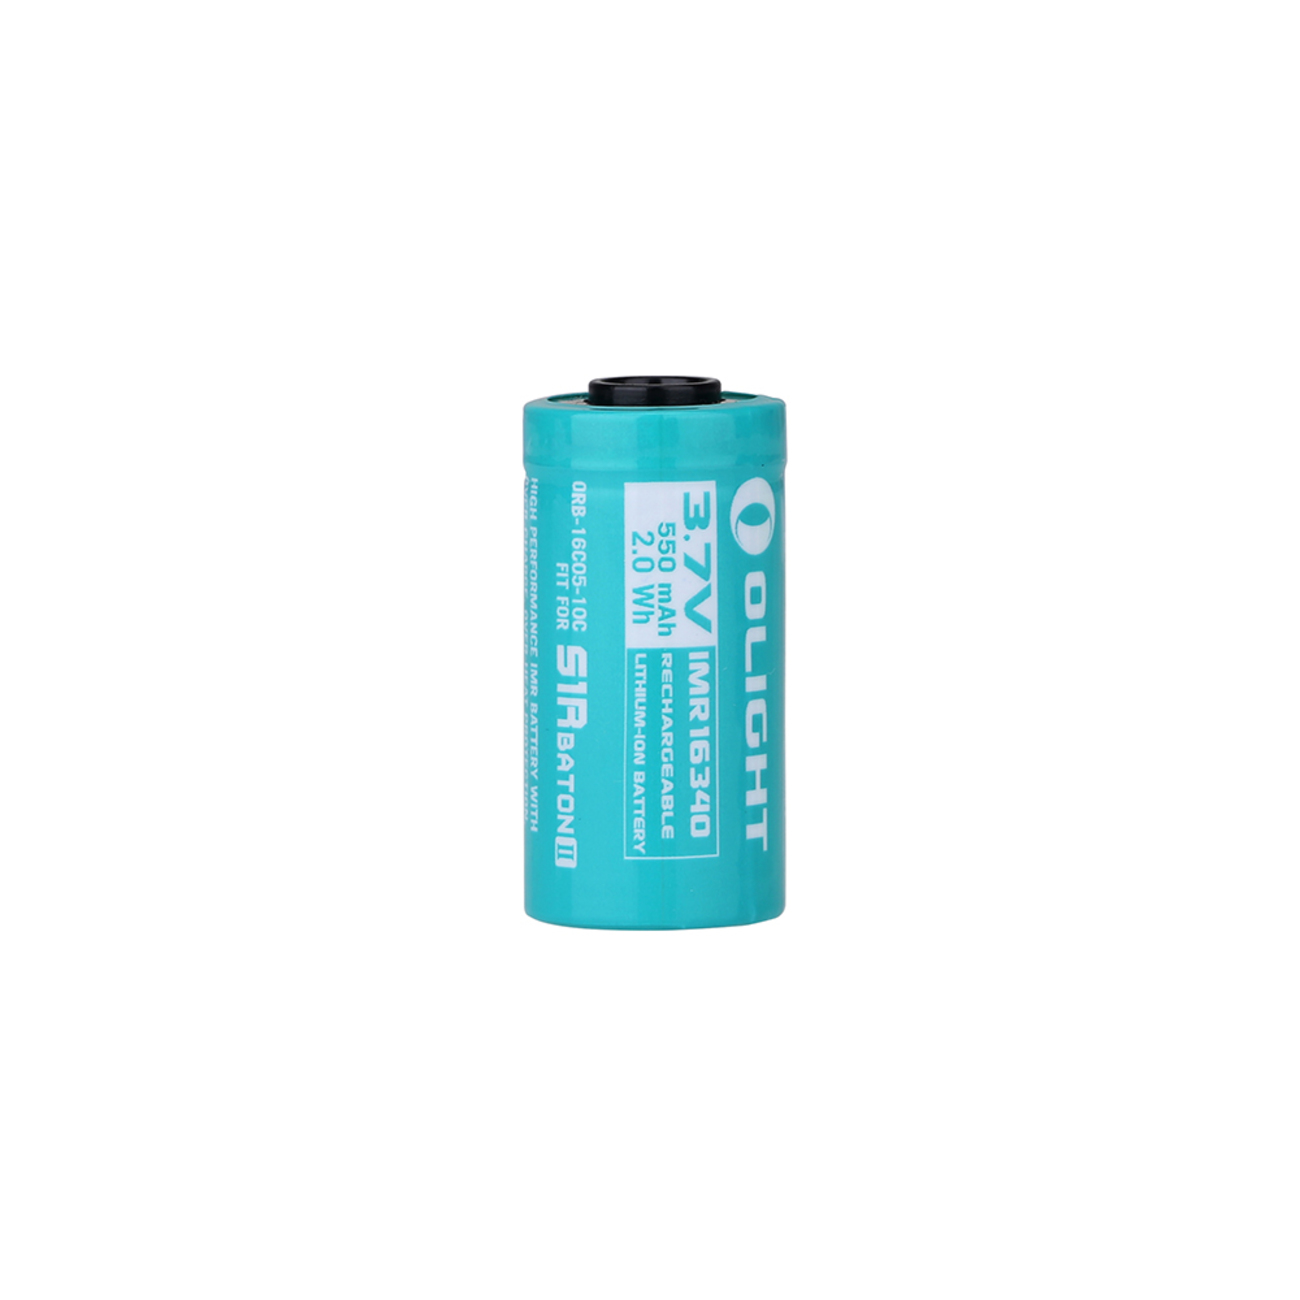 Olight Pin 550mAh IMR16340 Battery for S1R Baton II